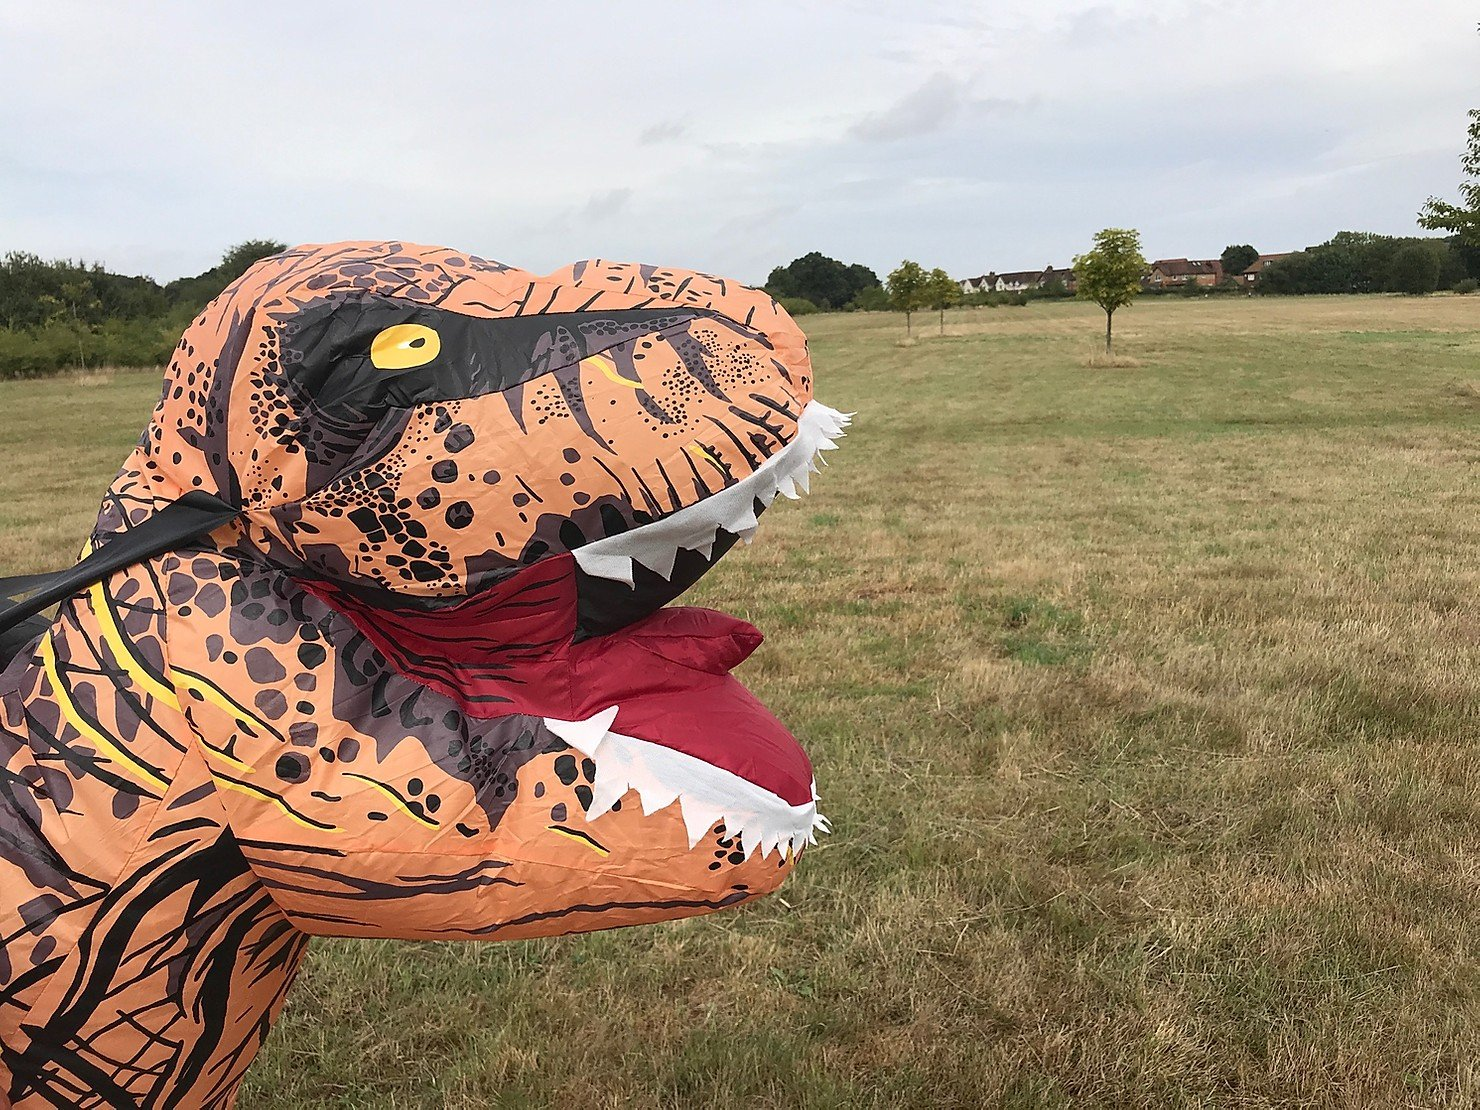 Dinosaur Trail at Peacocks Meadow, Bracknell (trail now finished)